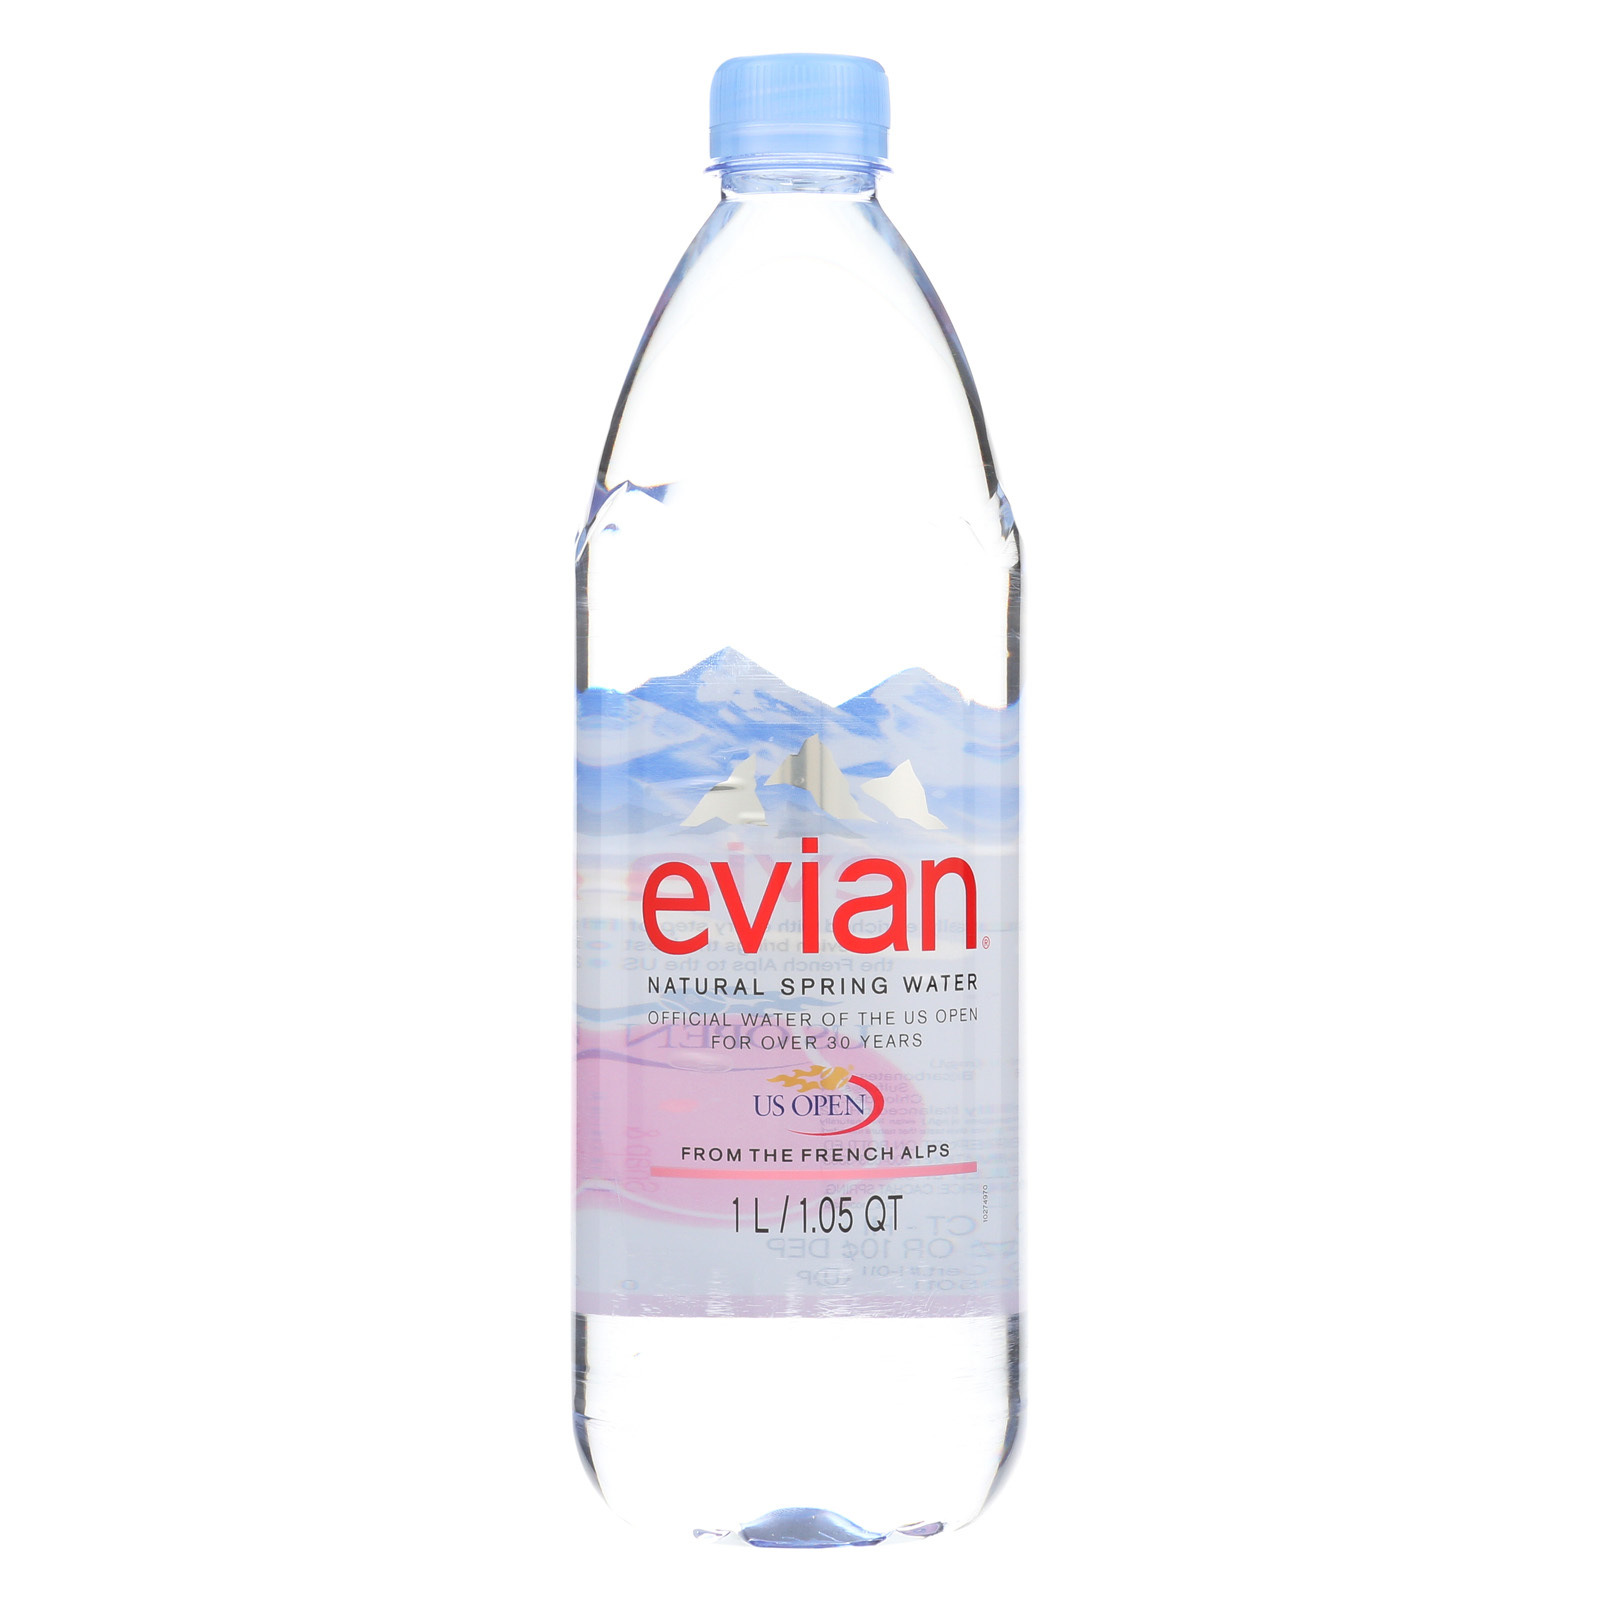 Evians Spring Water Bottled Water - Water - Case of 12 - 33.8 FL oz.